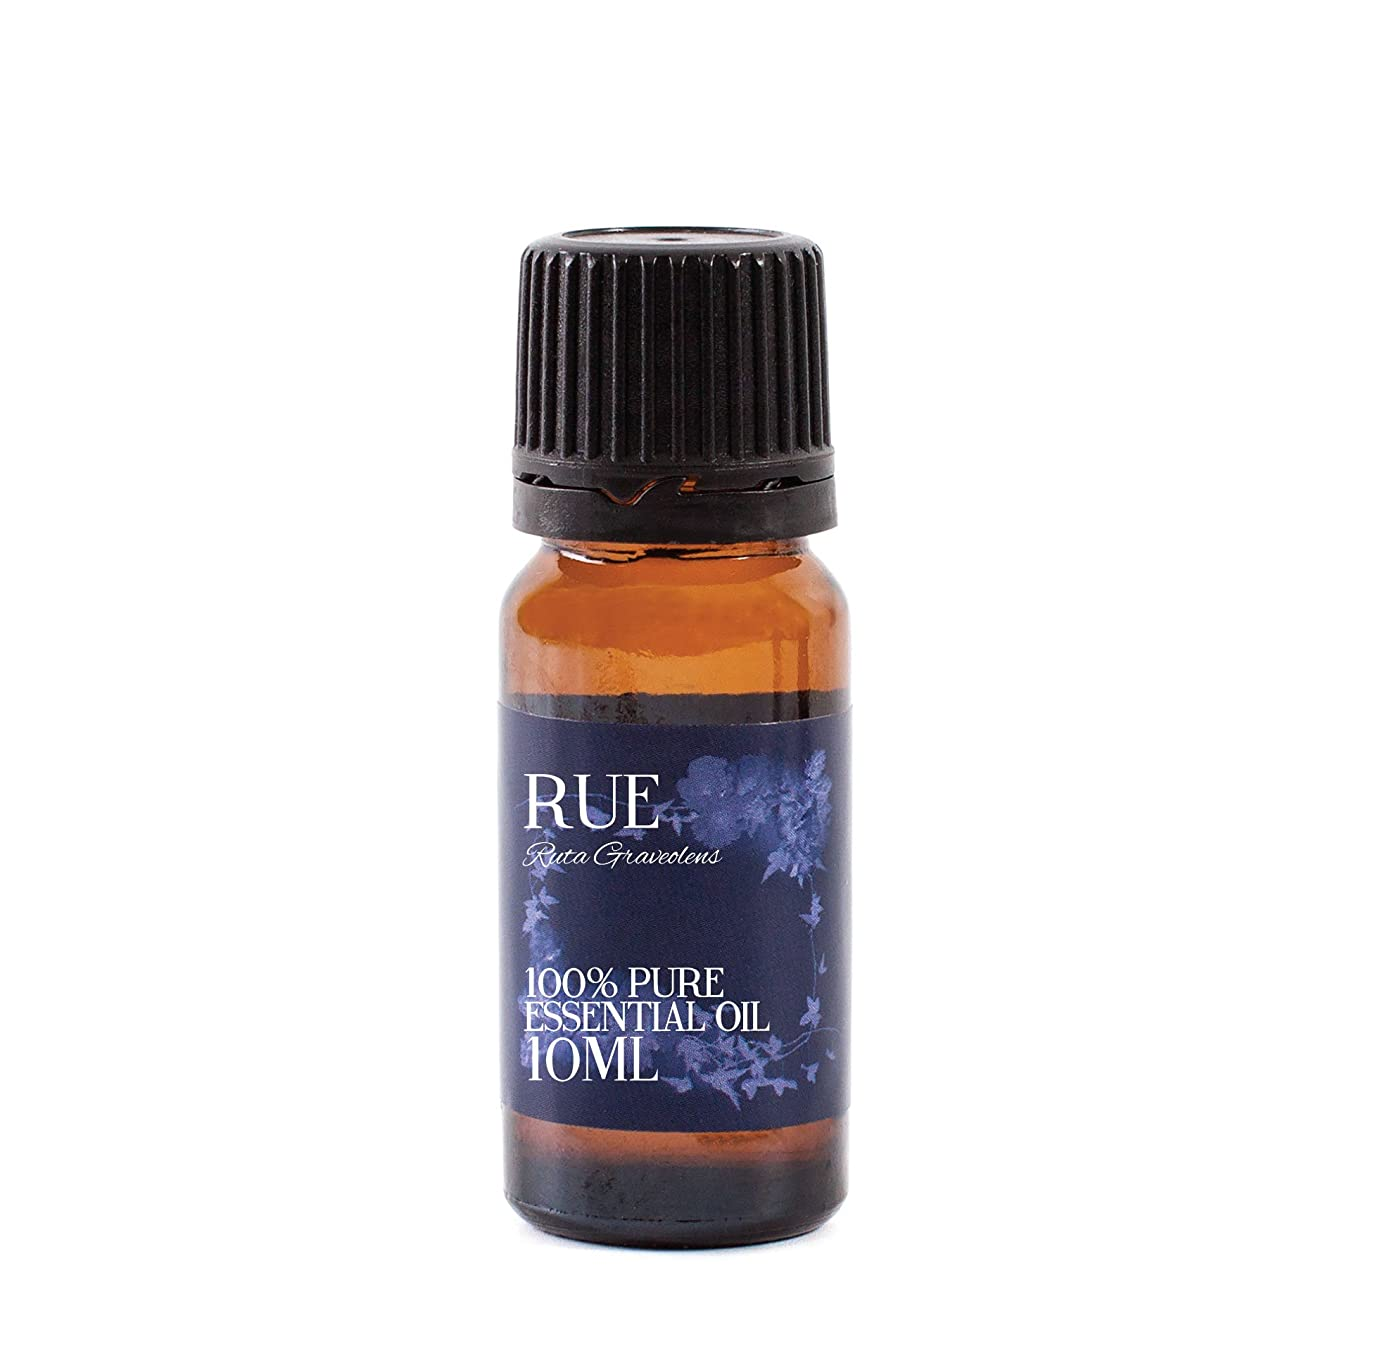 困惑した支払う海藻Mystic Moments | Rue Essential Oil - 10ml - 100% Pure